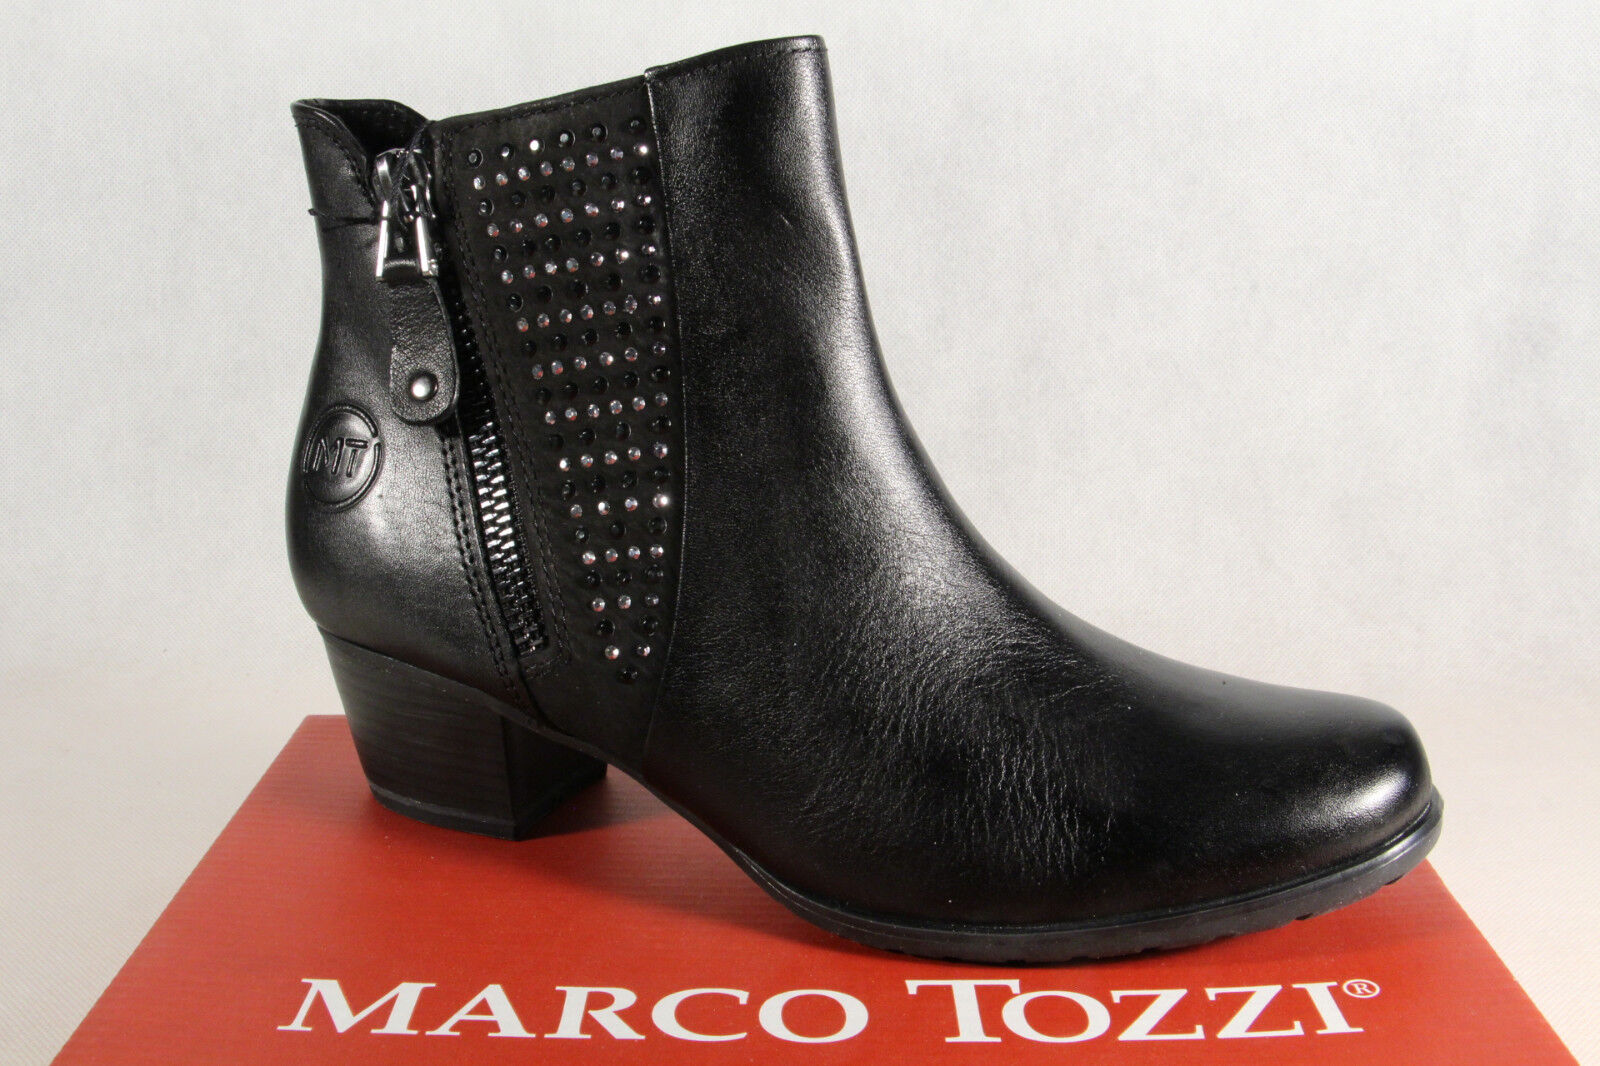 Marco Tozzi Boots, Ankle Boots, Black Lightly Lined, 25368 Real Leather New